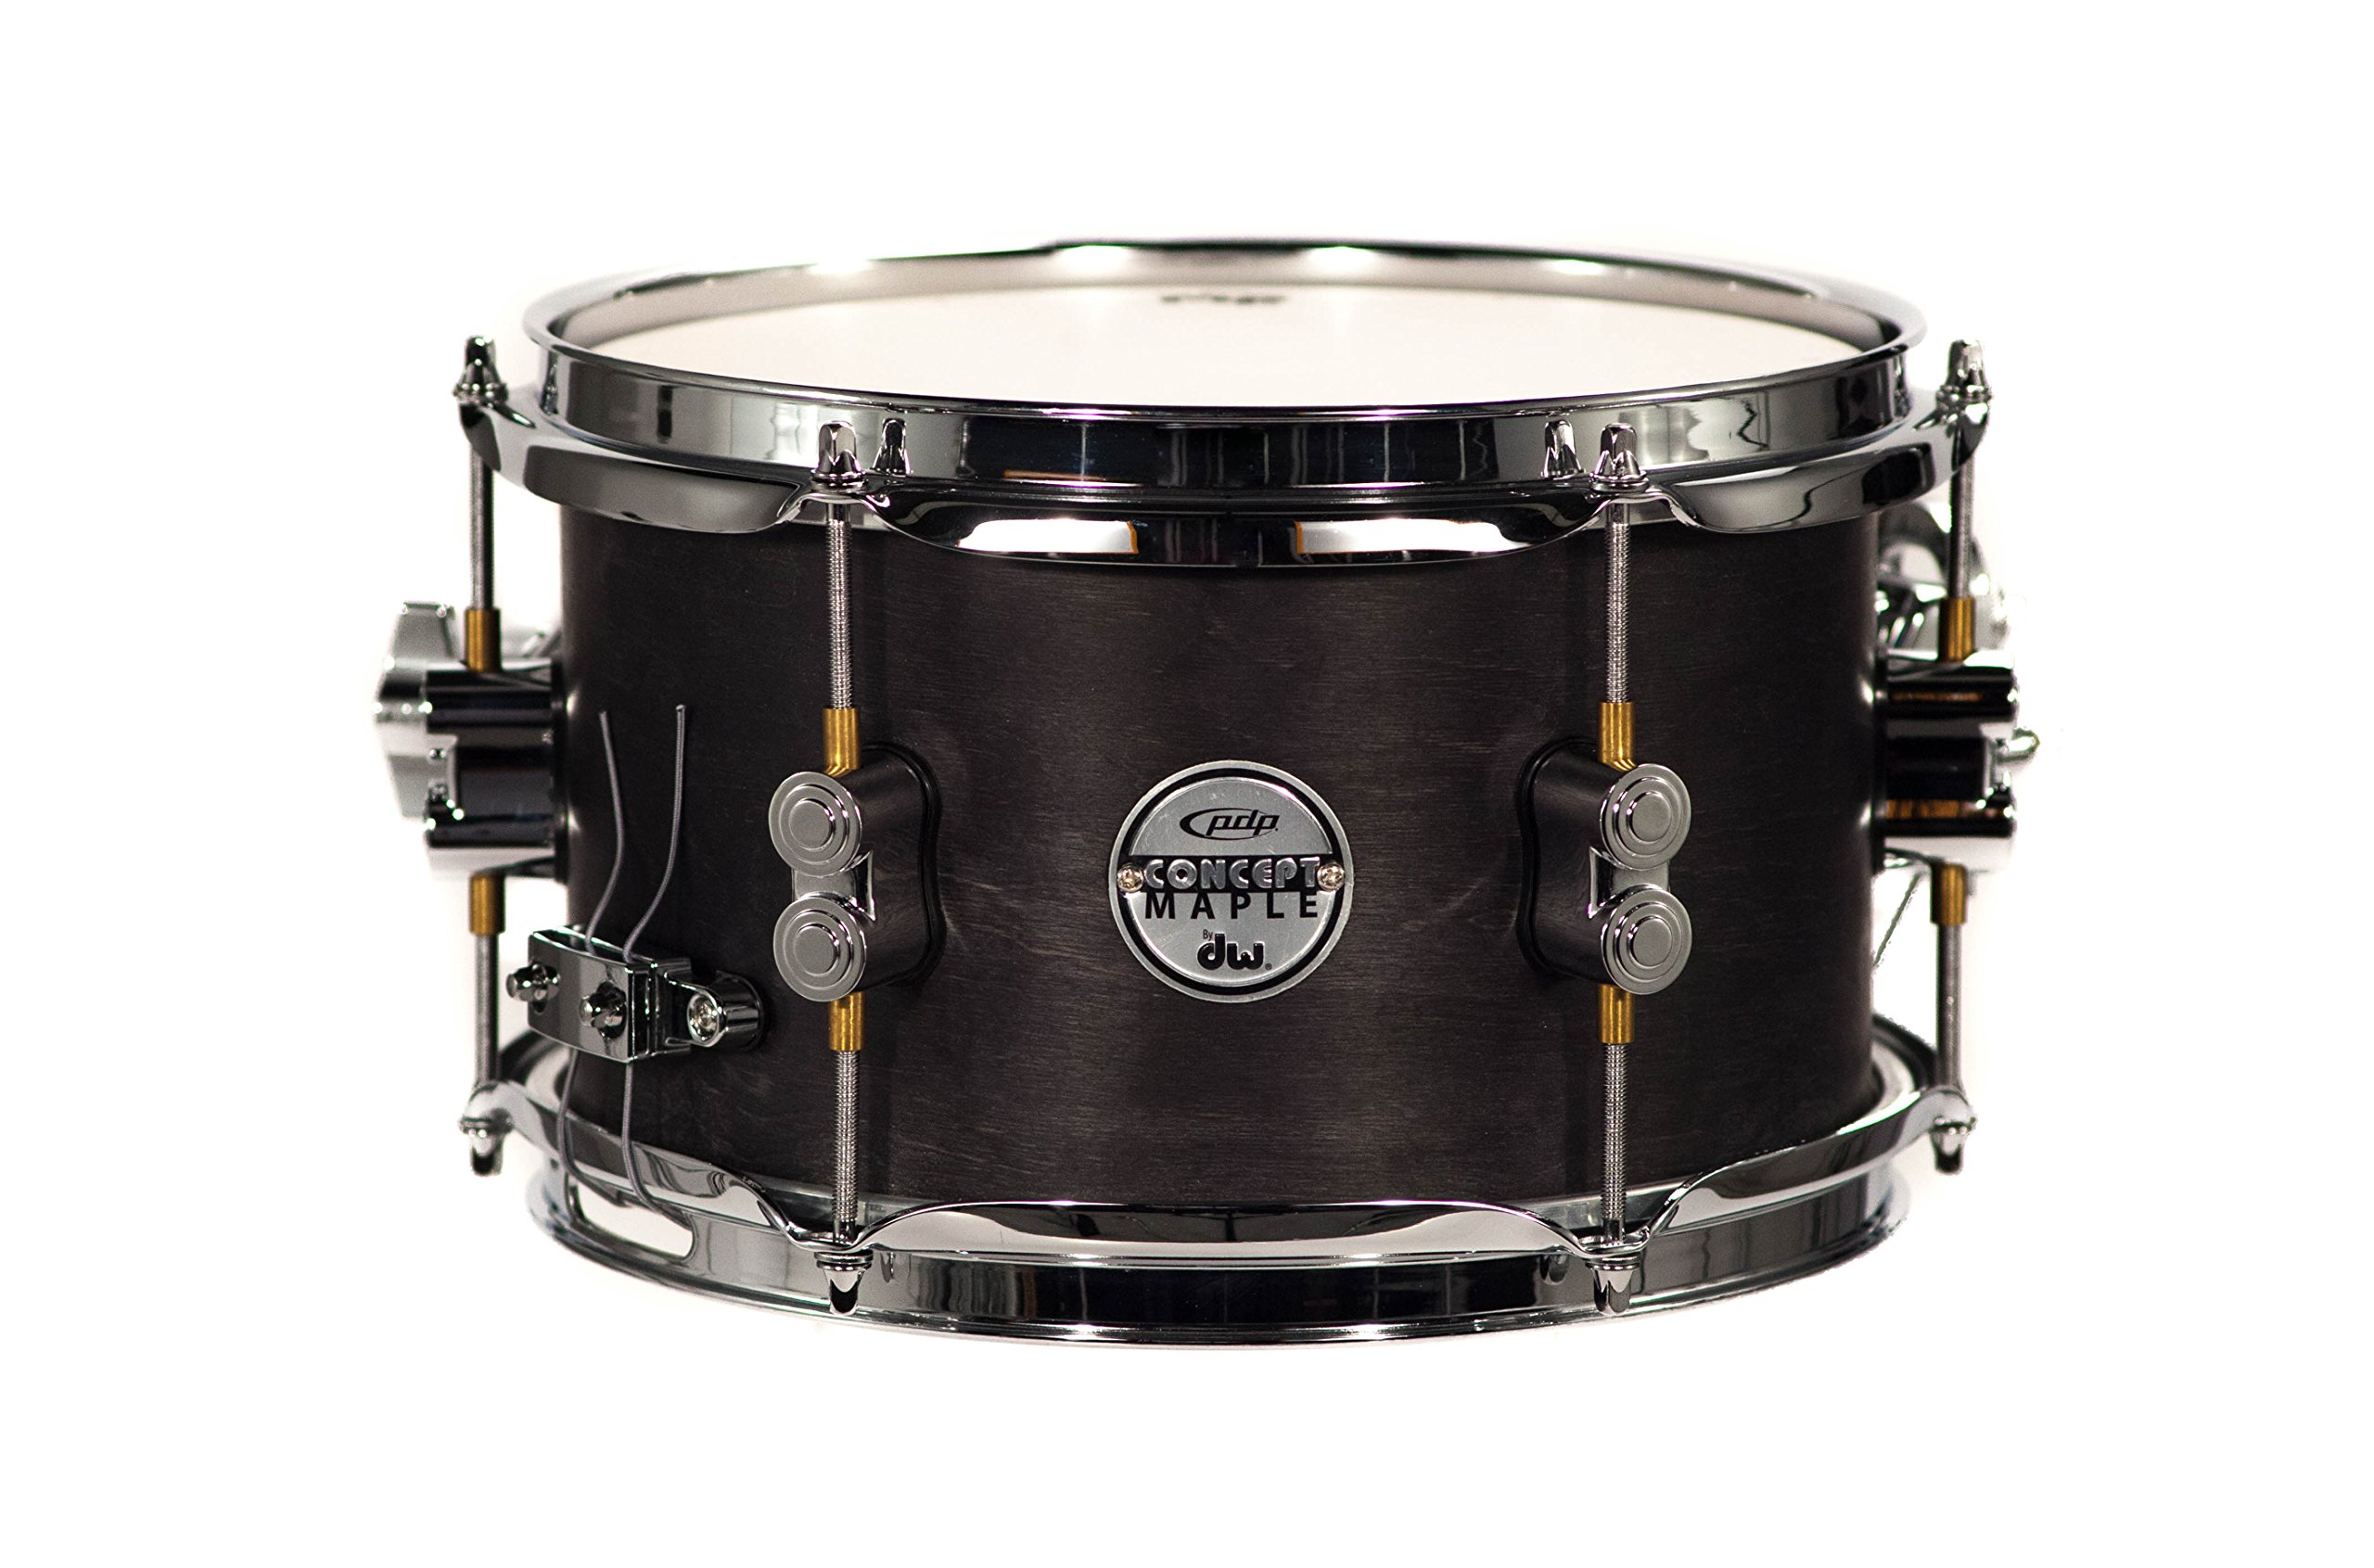 PDP By DW Black Wax Maple Snare Drum 6x10